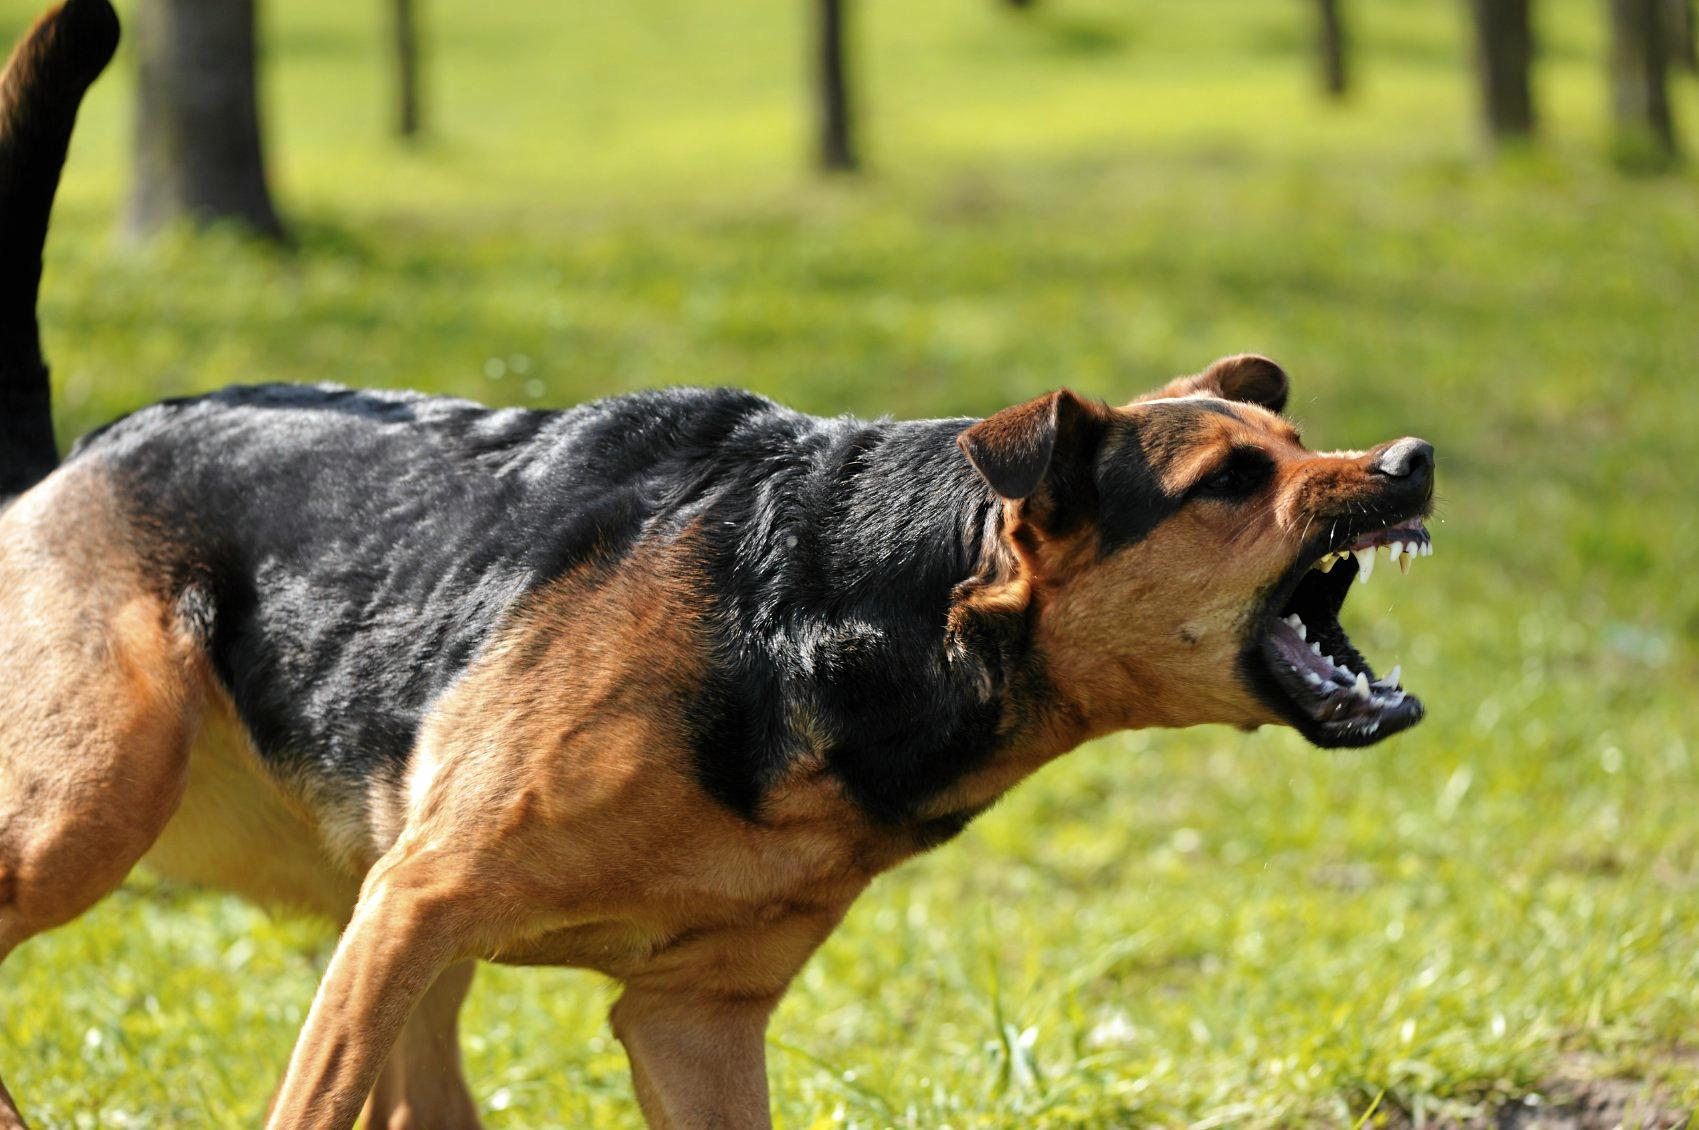 22 dog attacks have been recorded in the Gympie region this year so far.